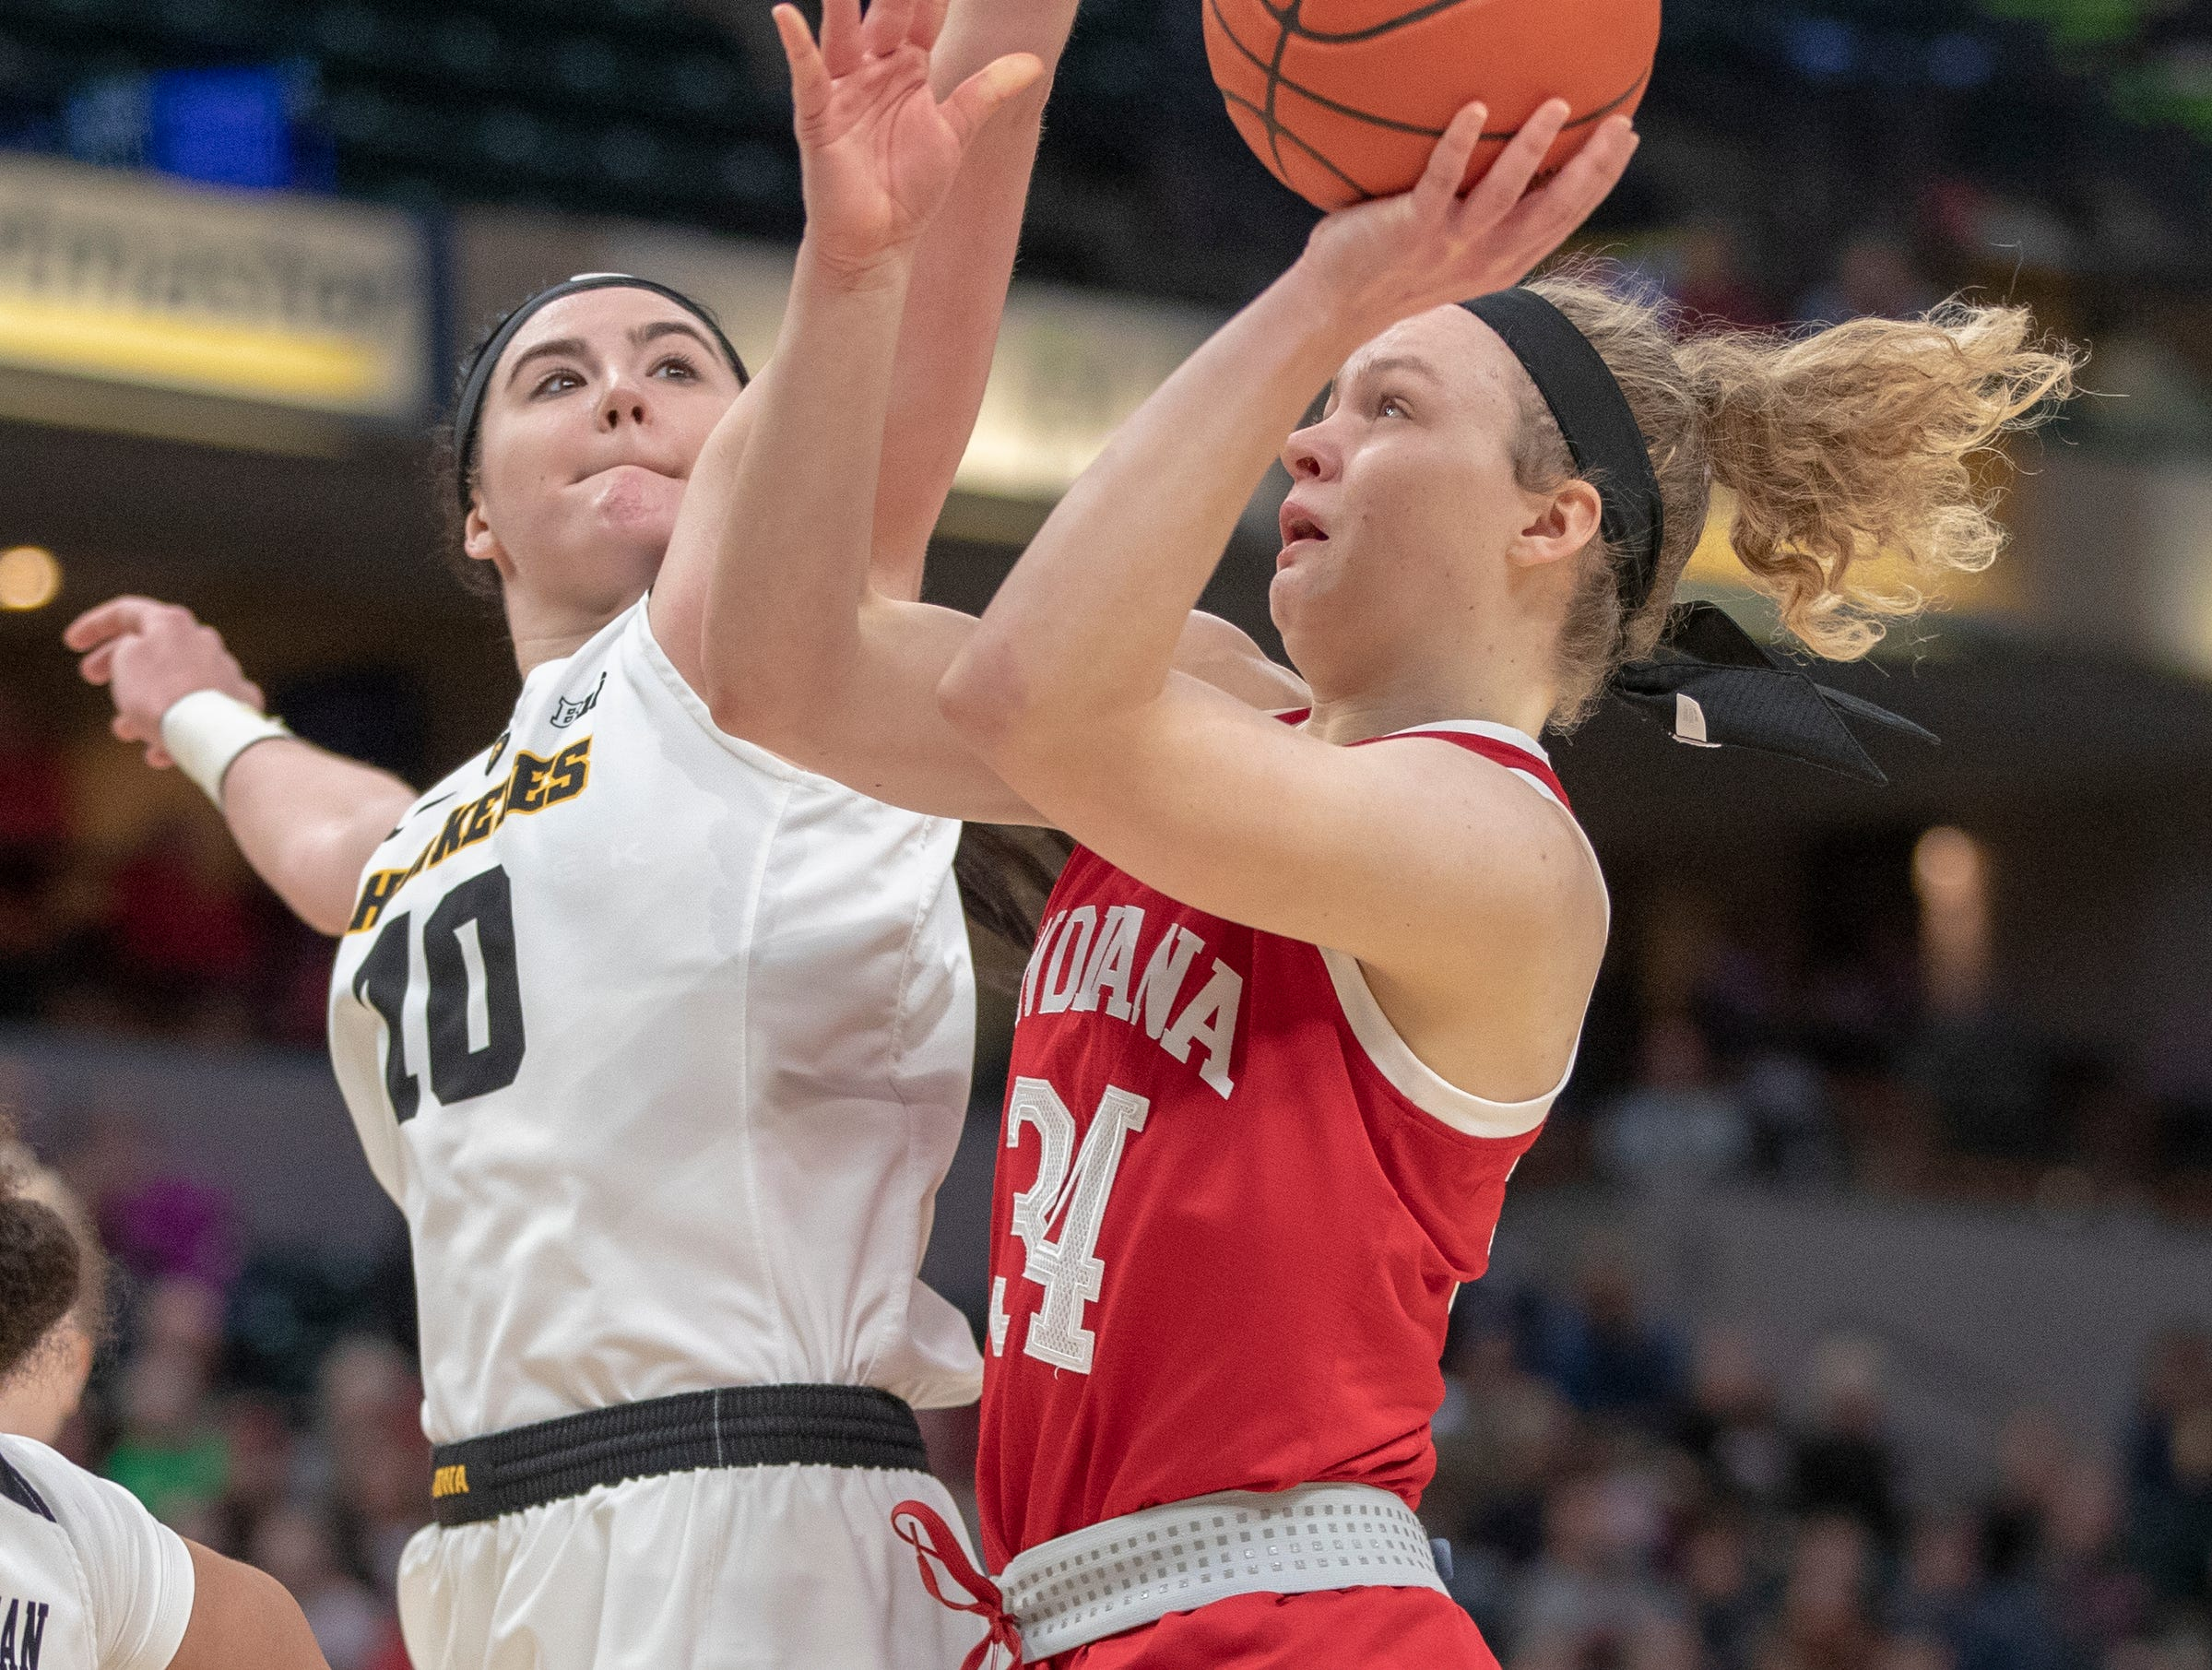 Megan Gustafson of the Iowa Hawkeyes blocks a shot by Grace Berger of the Indiana Hoosiers, first half action, Indiana vs. Iowa, Women's Big Ten Tournament, Bankers Life Fieldhouse, Indianapolis, Friday, March 8, 2019.